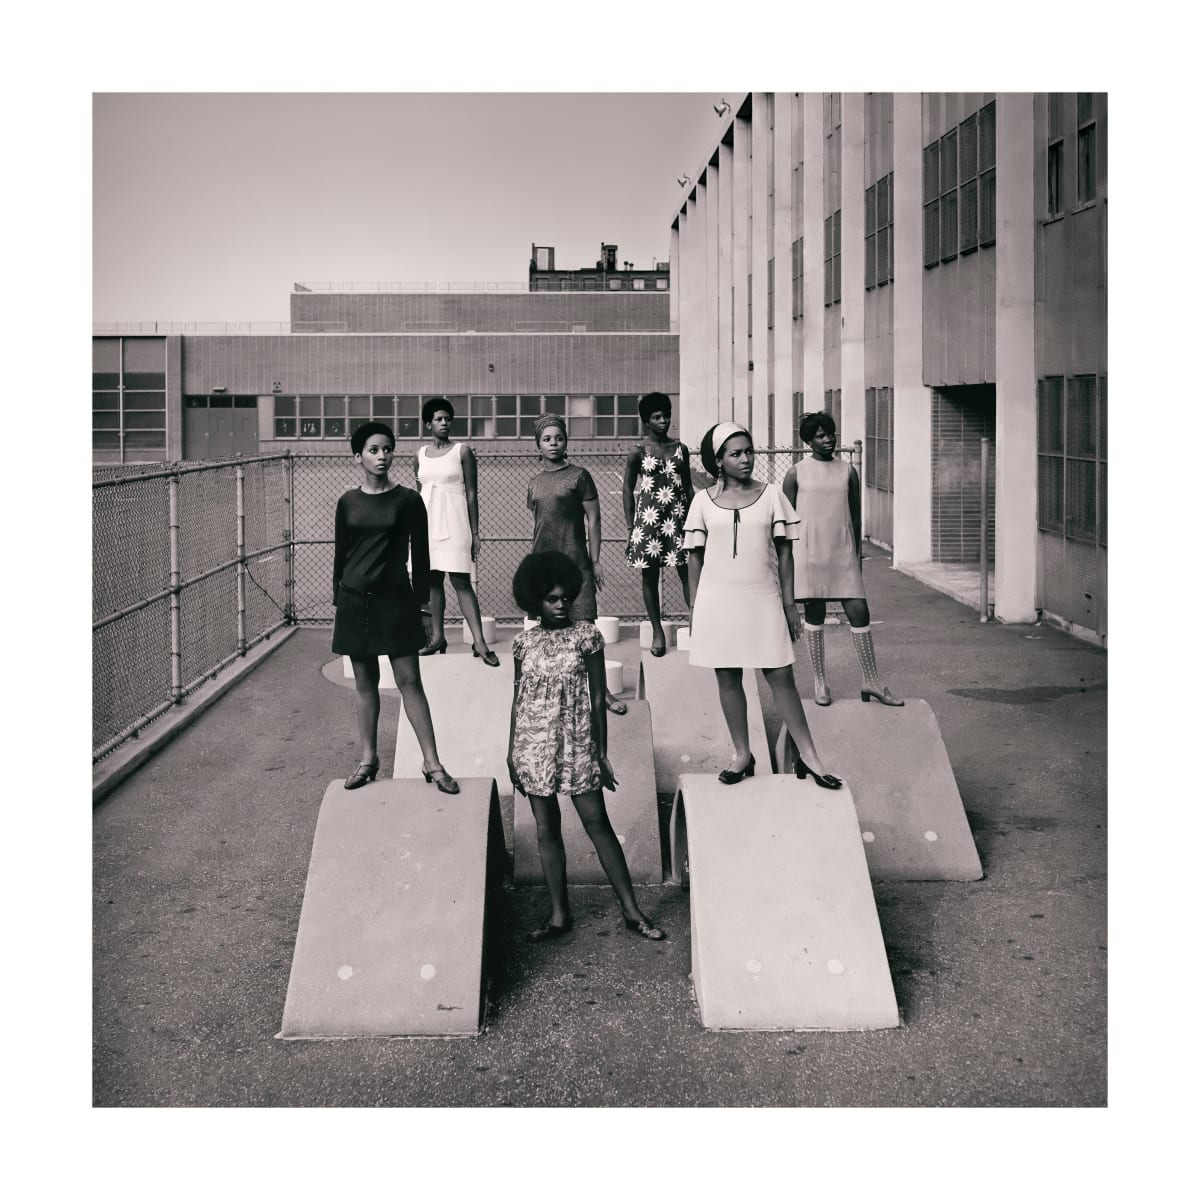 Kwame Brathwaite, Untitled (Photo shoot at a school for one of the many modeling groups who had begun to embrace natural hairstyles in the 1960s), 1966 c. printed 2018